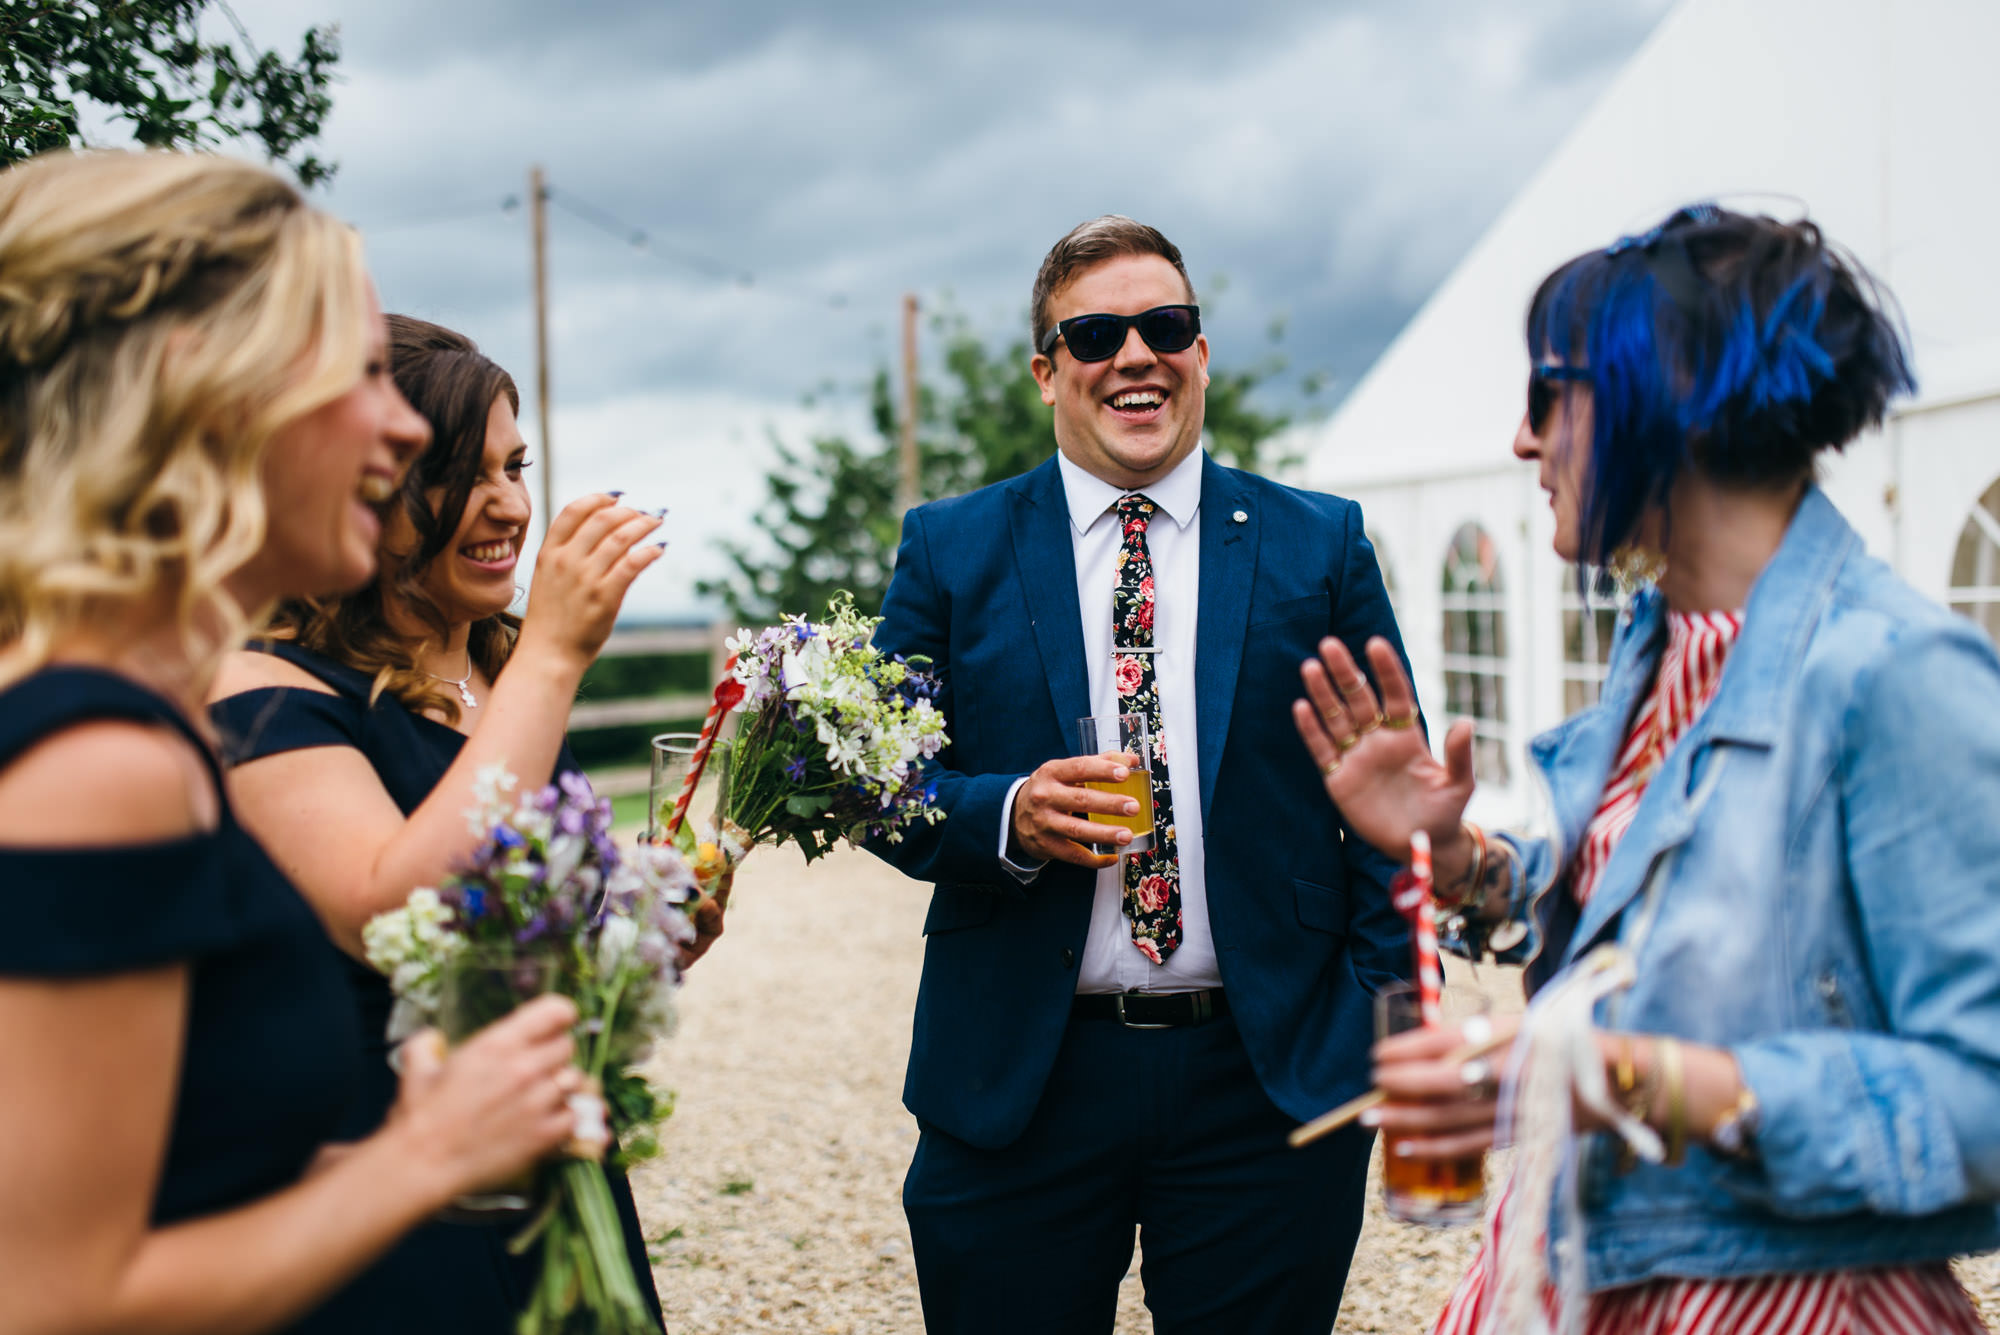 Reception at Huntstile organic farm wedding